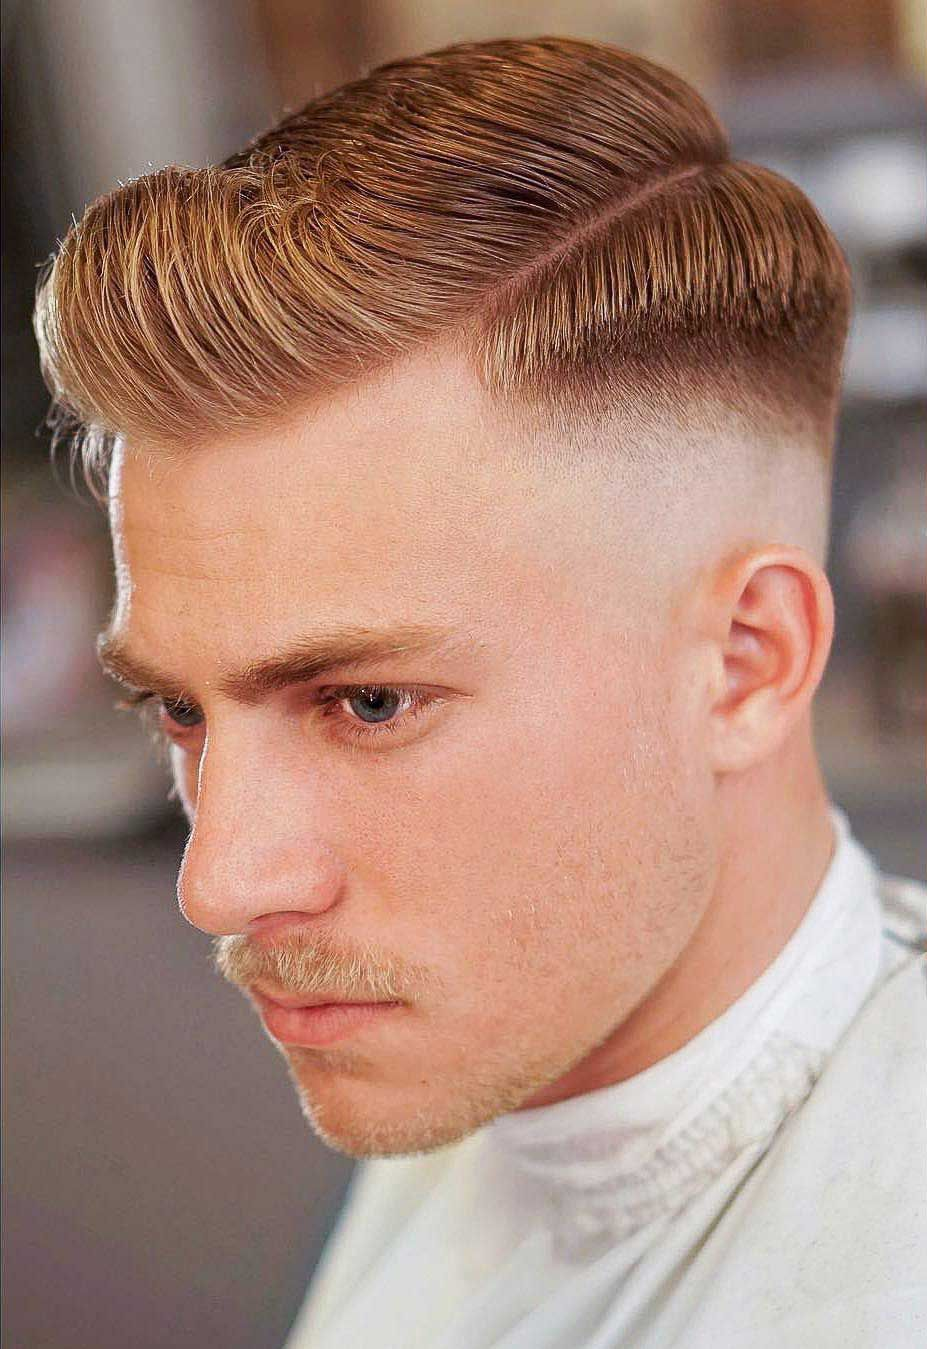 70 Skin Fade Haircut Ideas Trendsetter For 2020 Comb Over Fade Haircut High And Tight Haircut Side Part Hairstyles